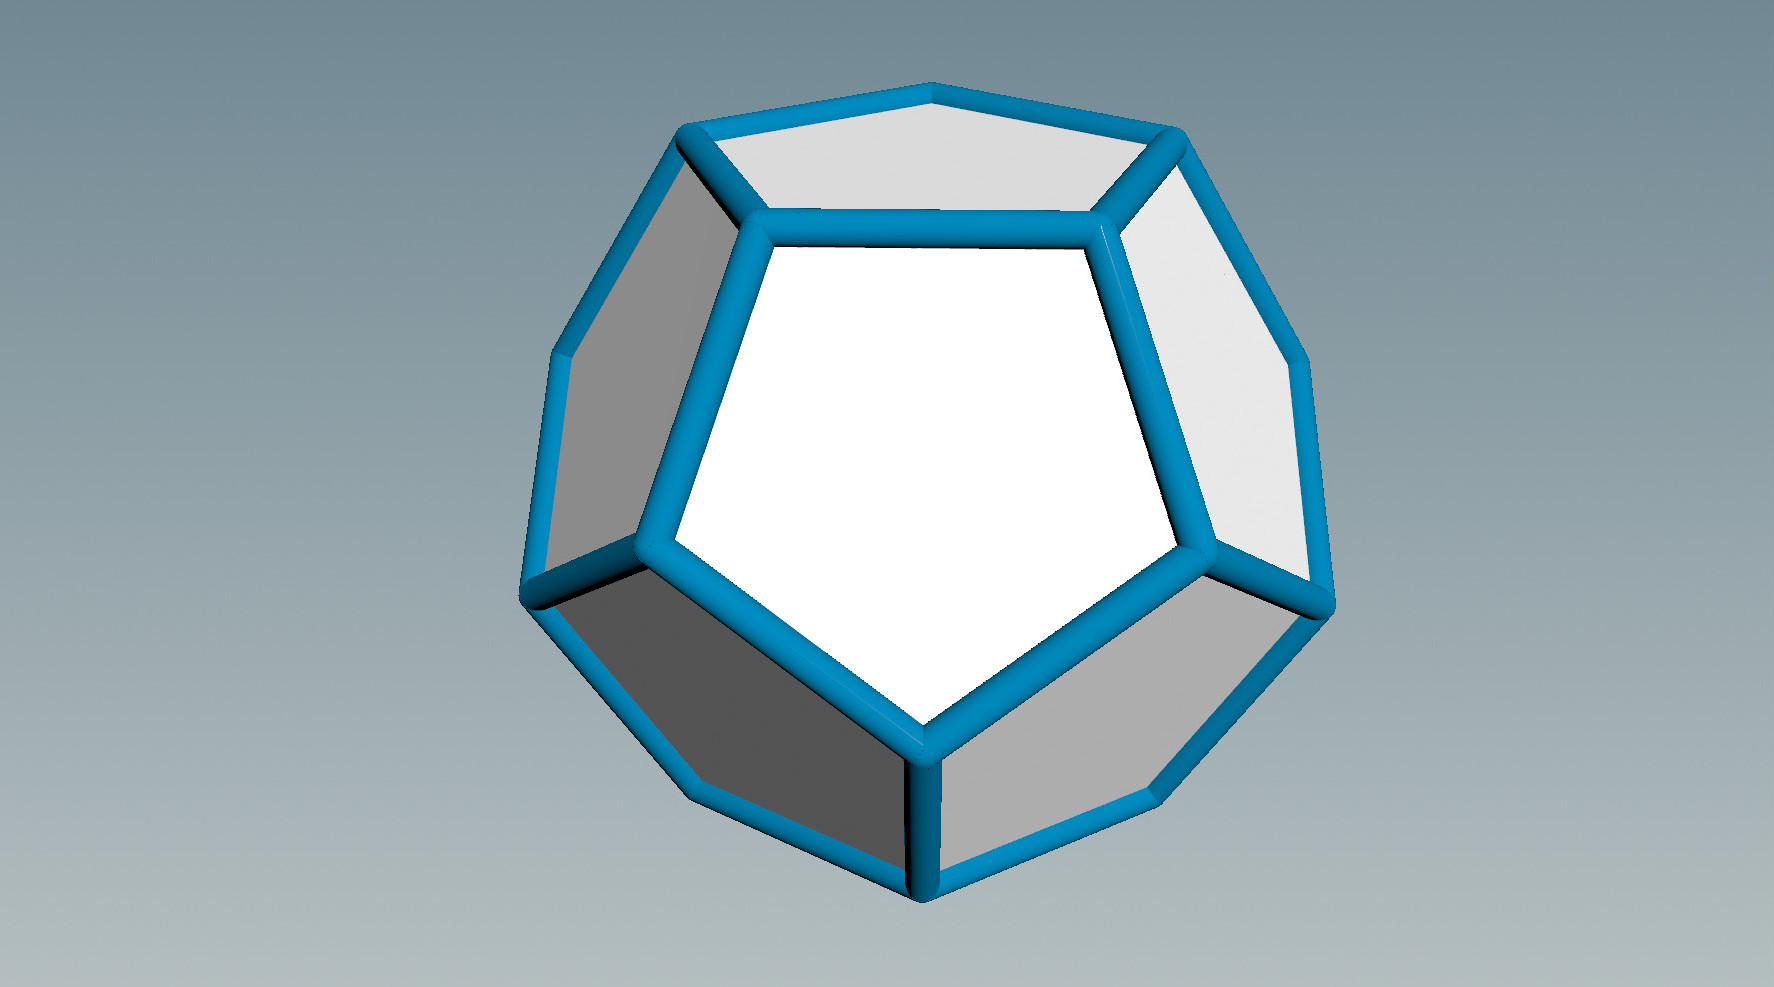 dodecahedron-with-edges